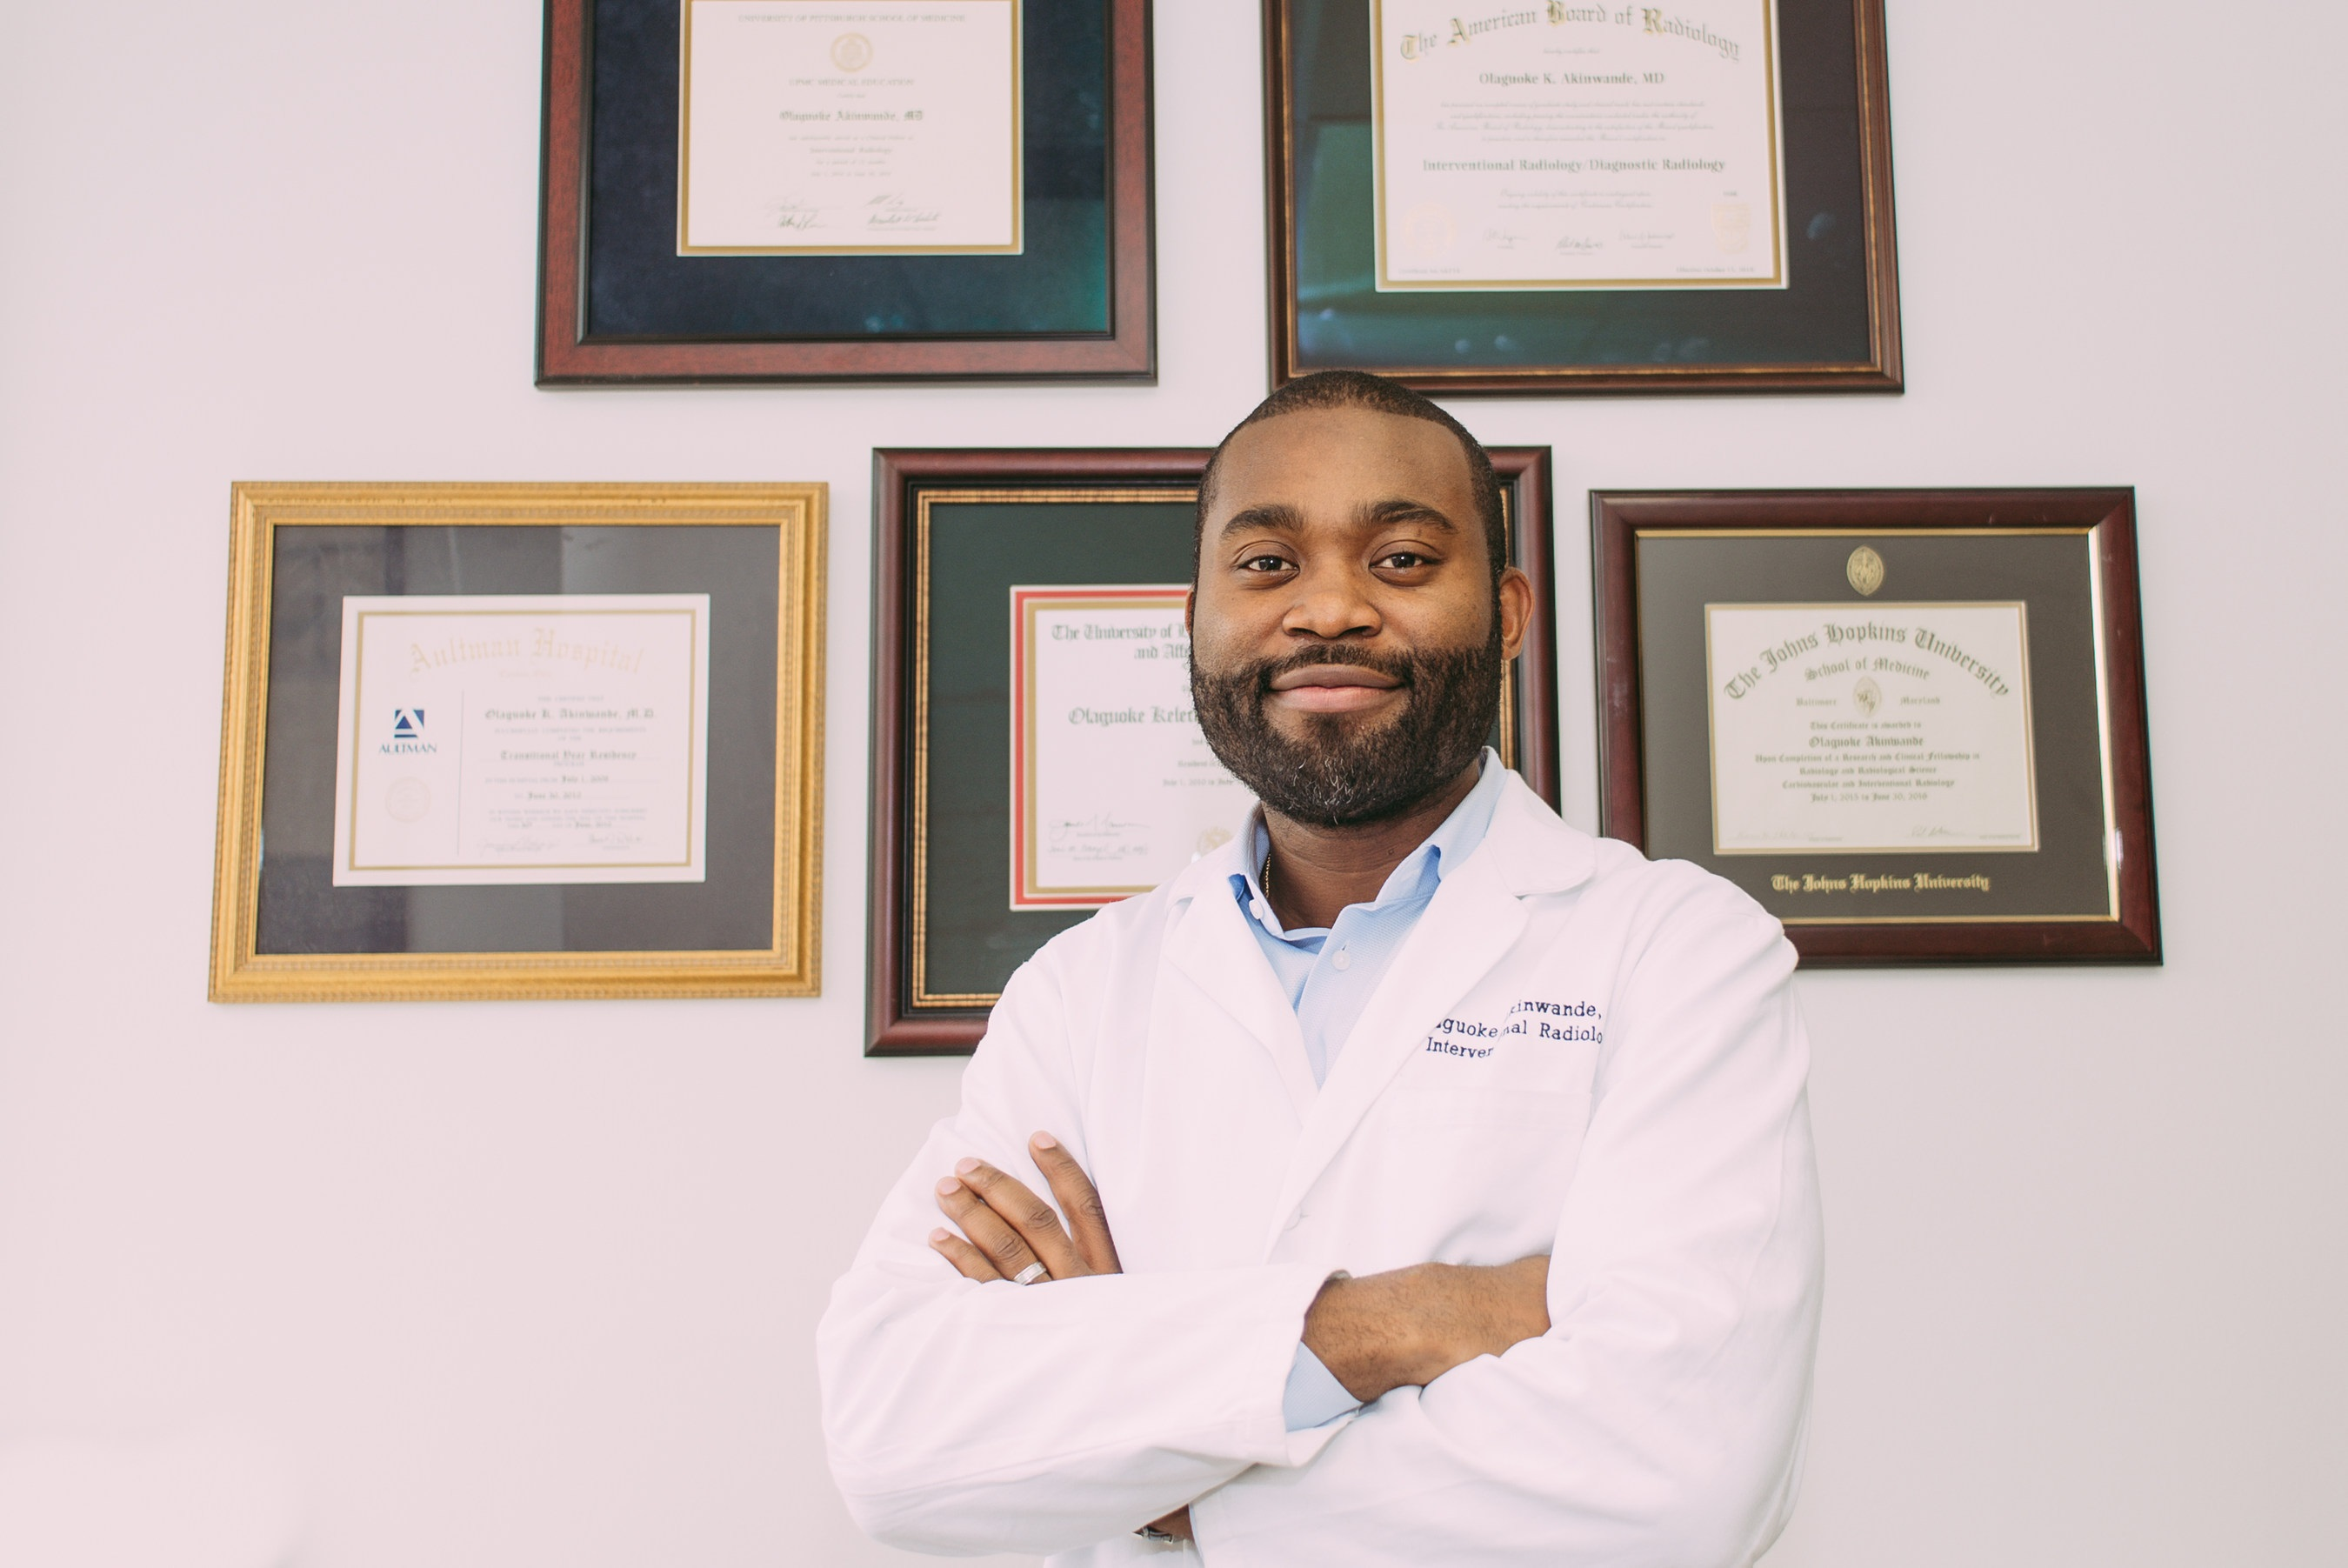 Dr. Goke Akinwande: Endovascular Procedure Specialist and founder and medical director of the Midwest Institute for Non-Surgical Therapy (MINT)